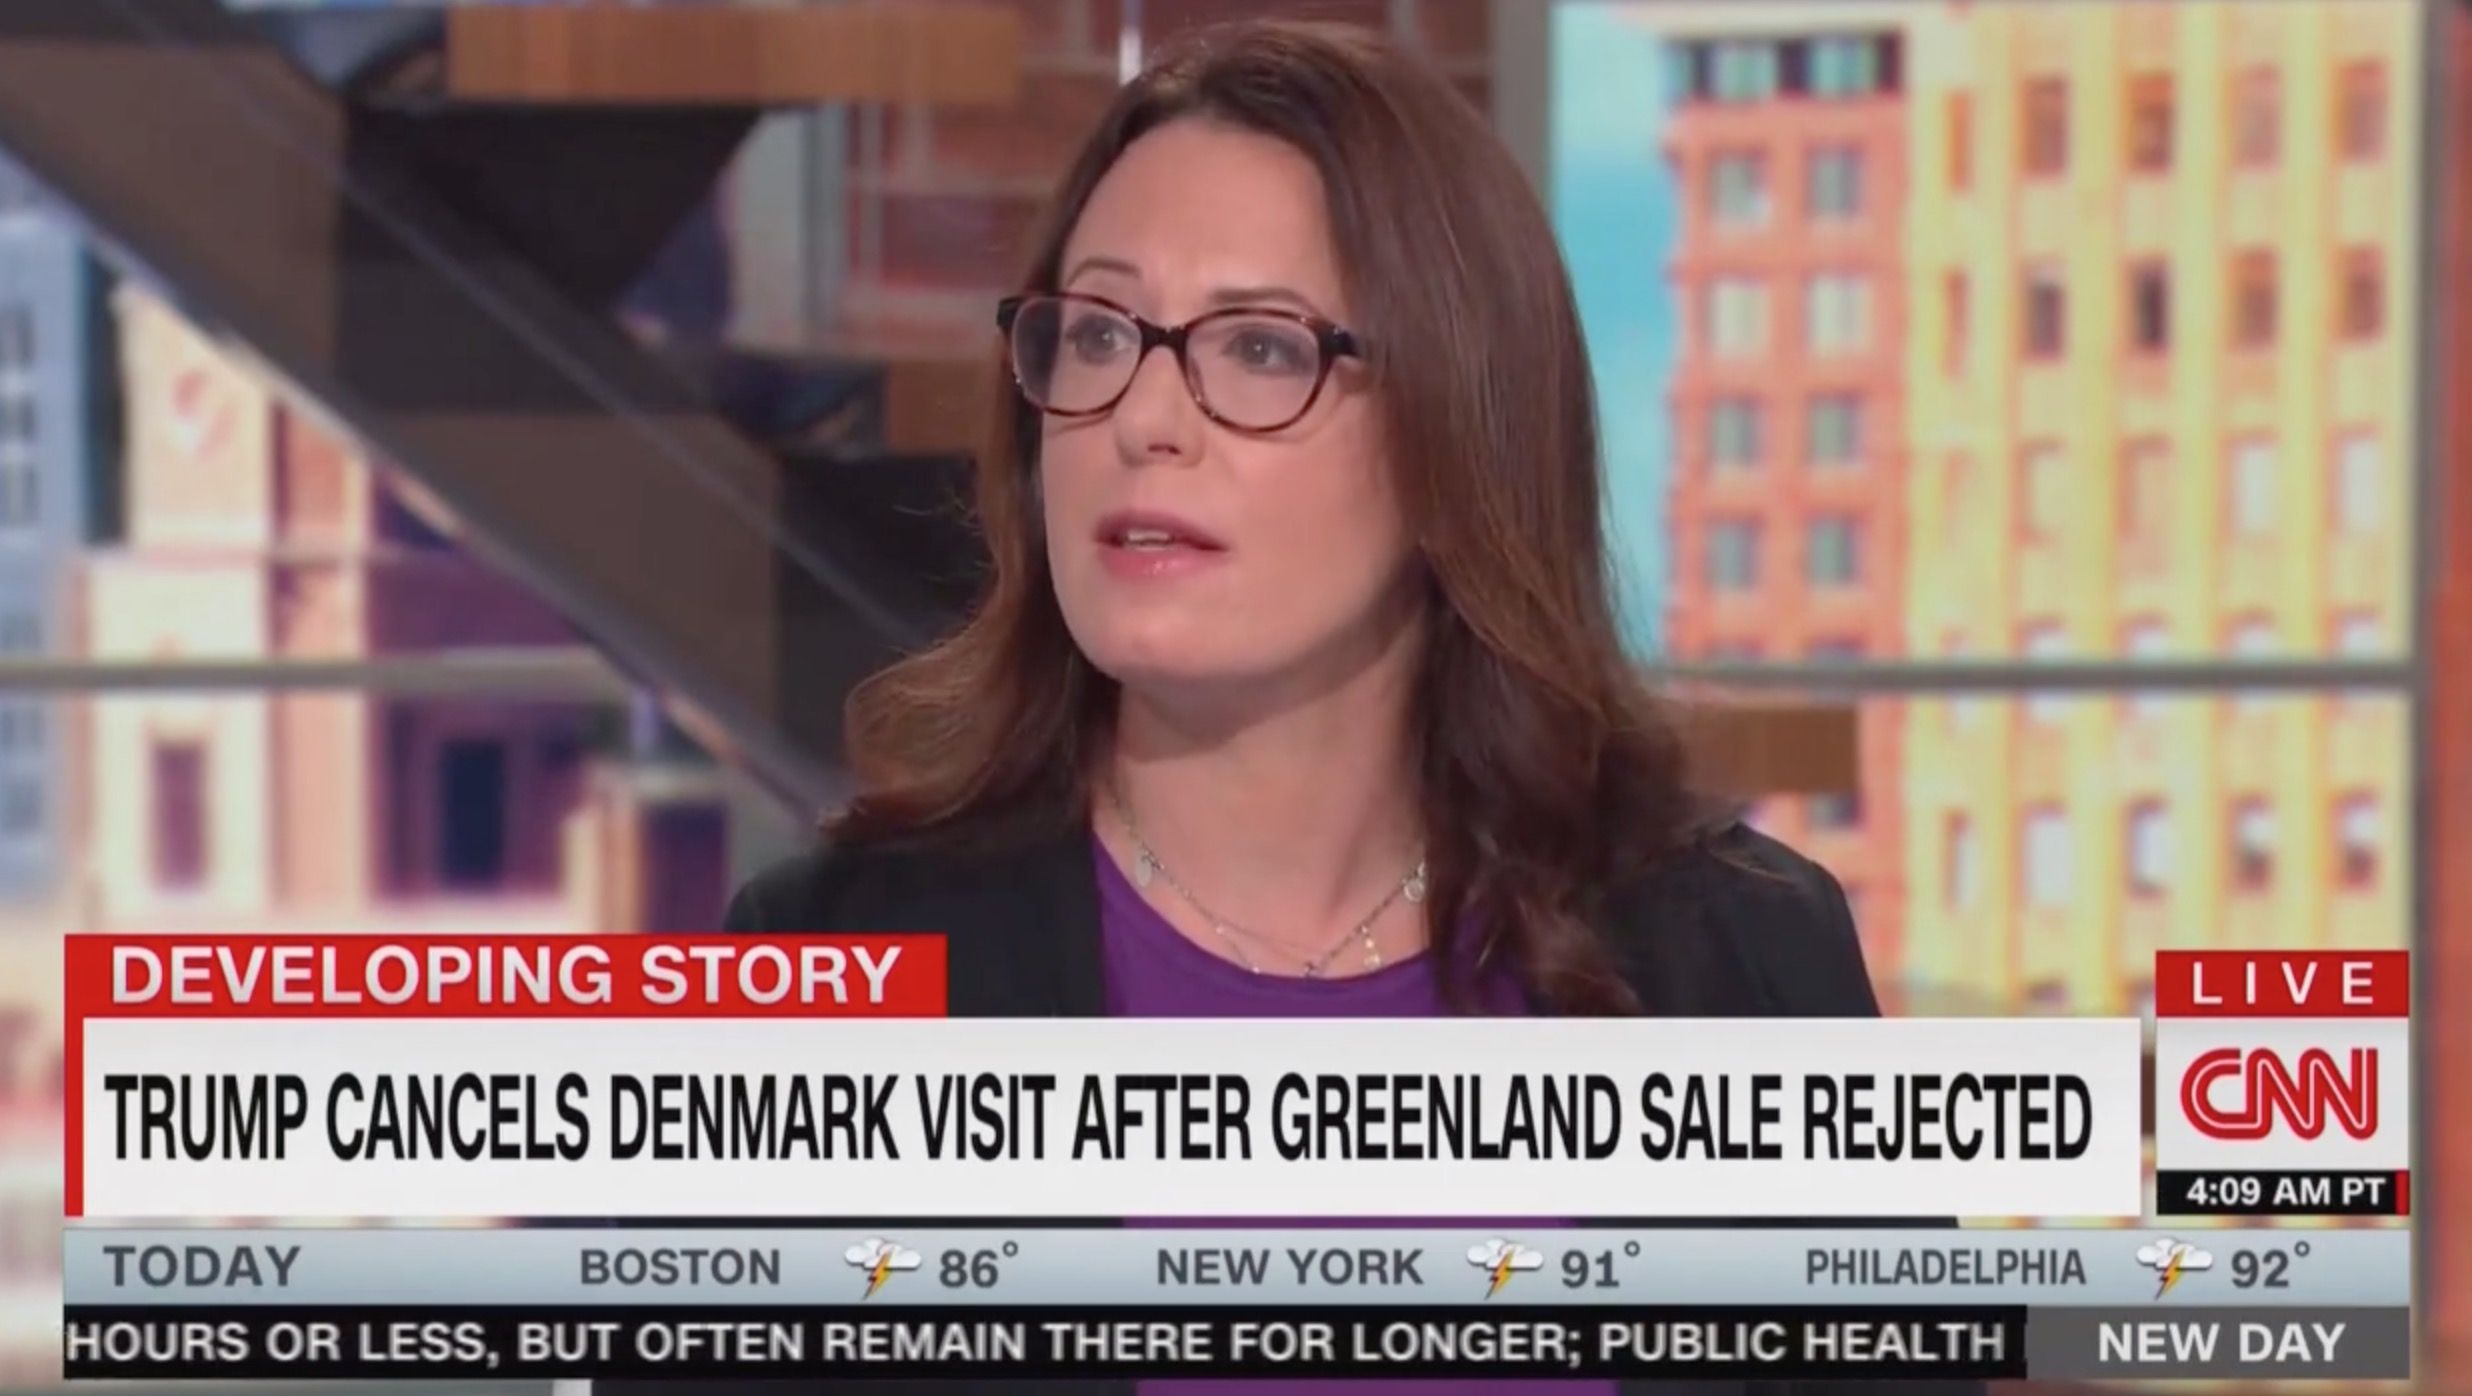 Maggie Haberman: Trump Was 'Hugely Disrespectful' to Denmark, But Didn't Cancel Trip Over Greenland